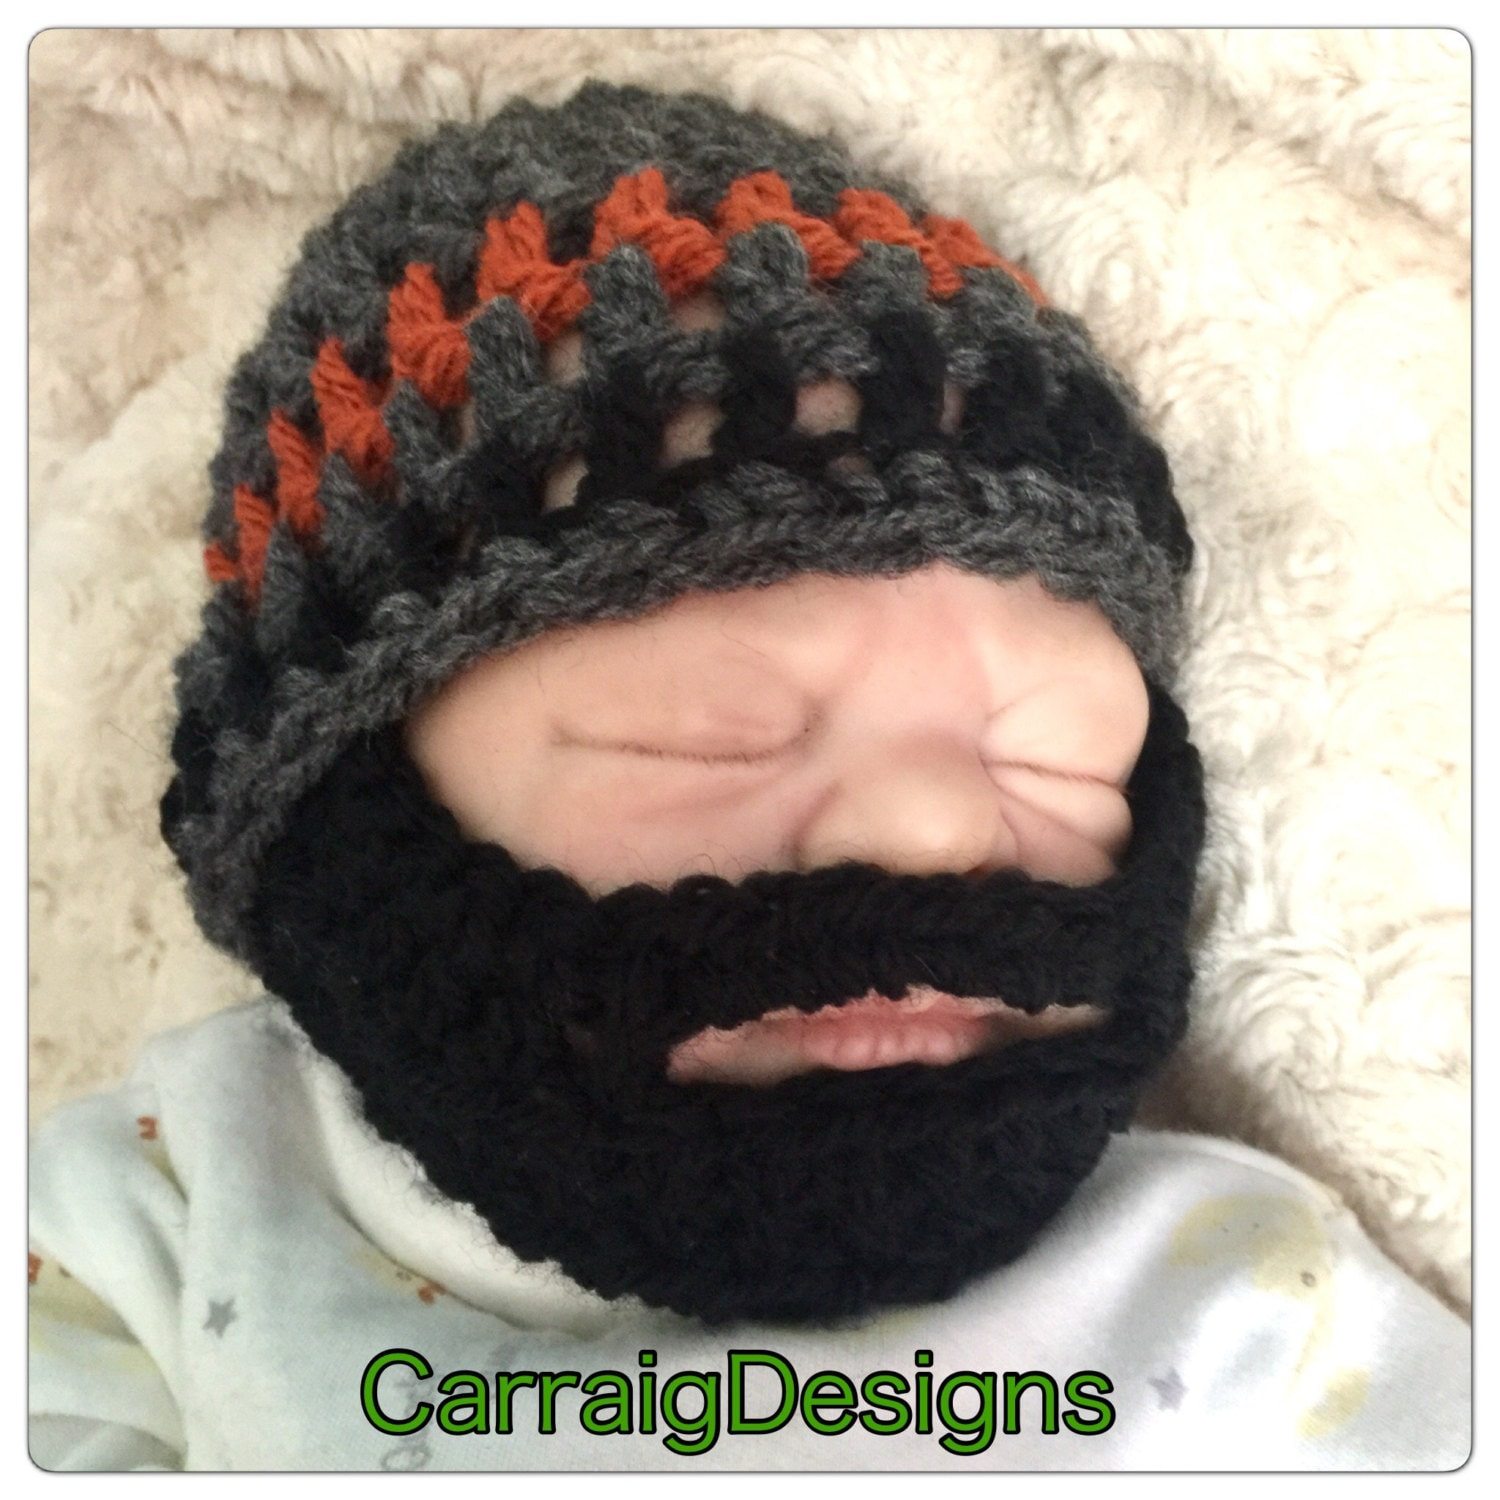 fac5f07d1e2 Baby boy beard black crocheted knitted hippie hippy boho FITTED or SLOUCH  beanie unique designer kids newborn shower gift bearded lumberjack